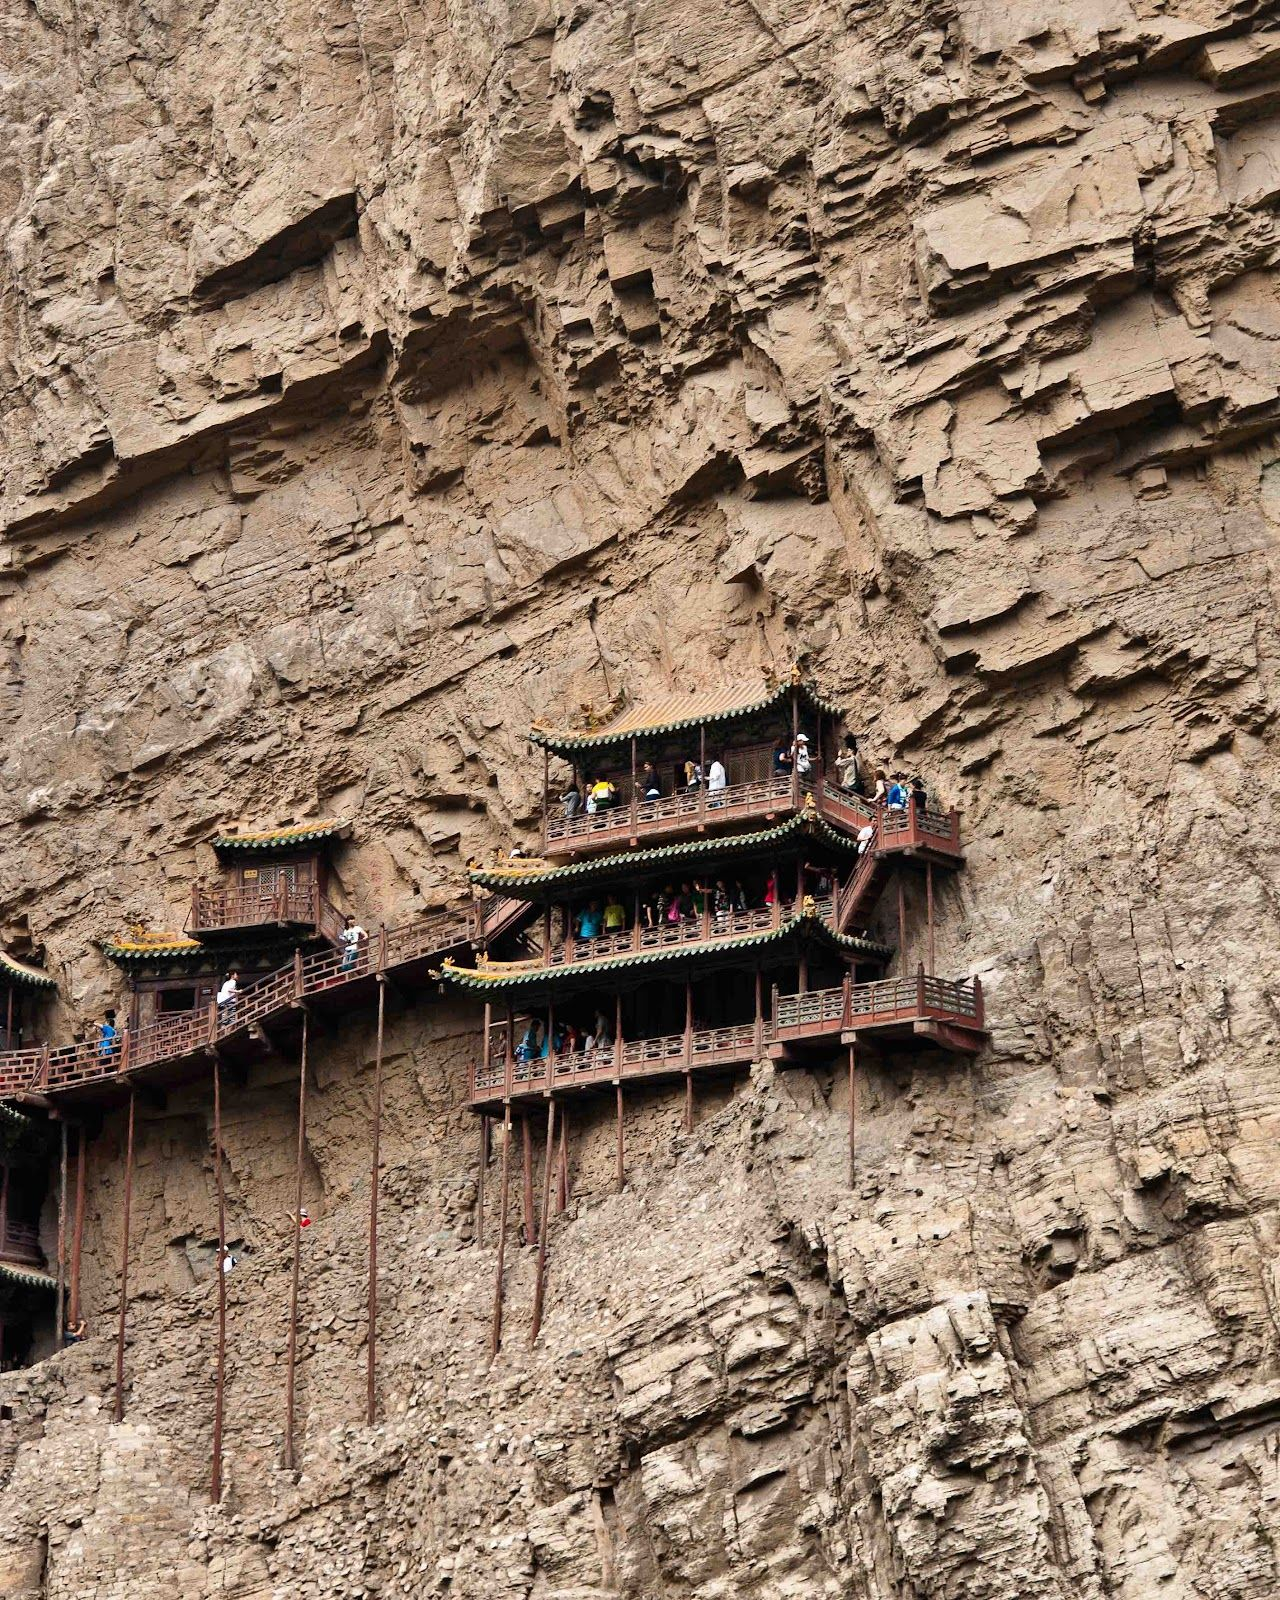 Places Of Worship For Taoism: Life On Nanchang Lu: The Hanging Temple Of Jingxia Gorge